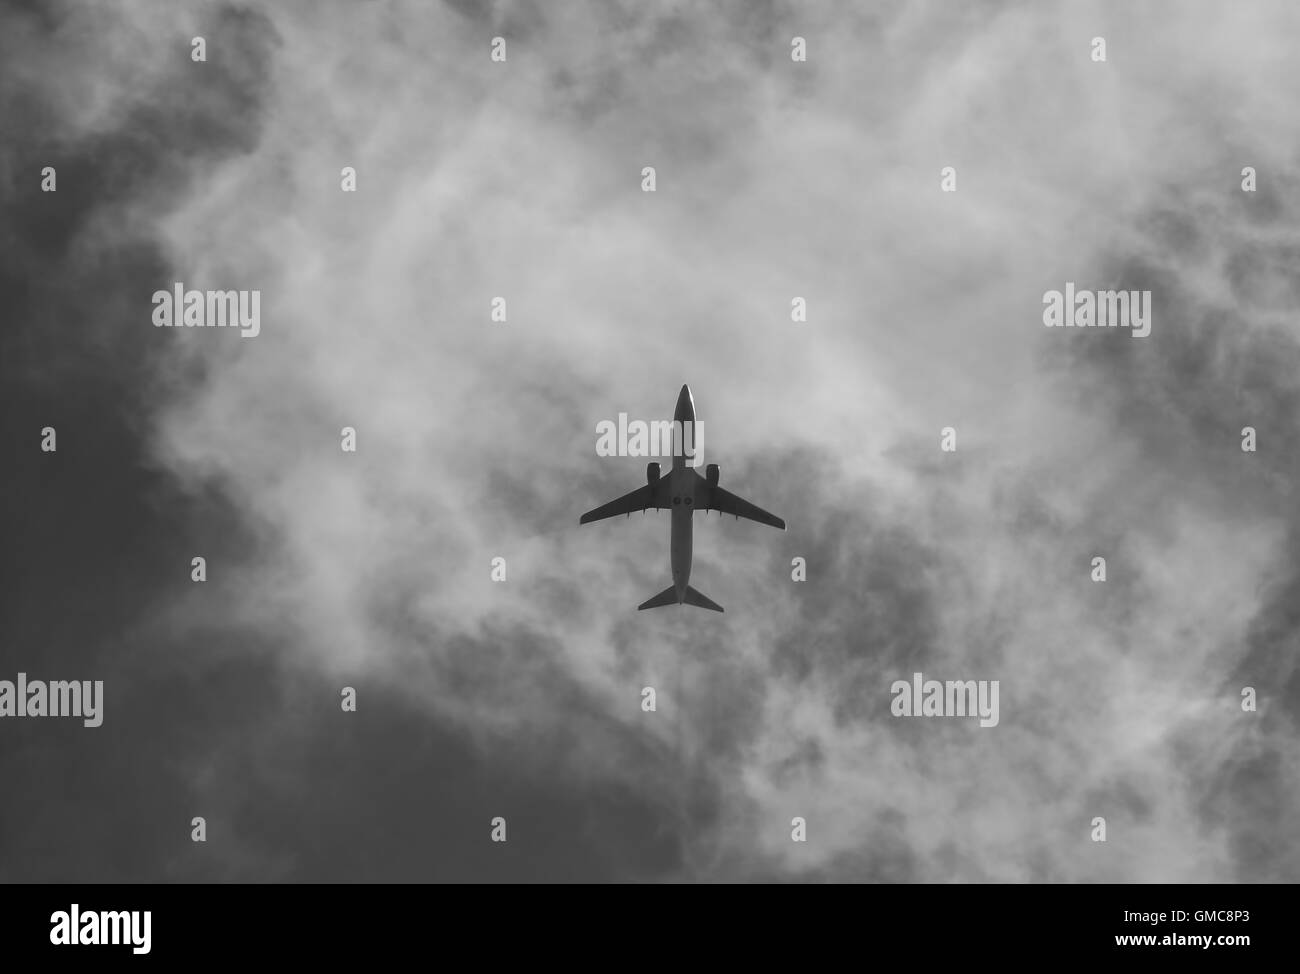 Civil aircraft cloud sky in black and white. - Stock Image